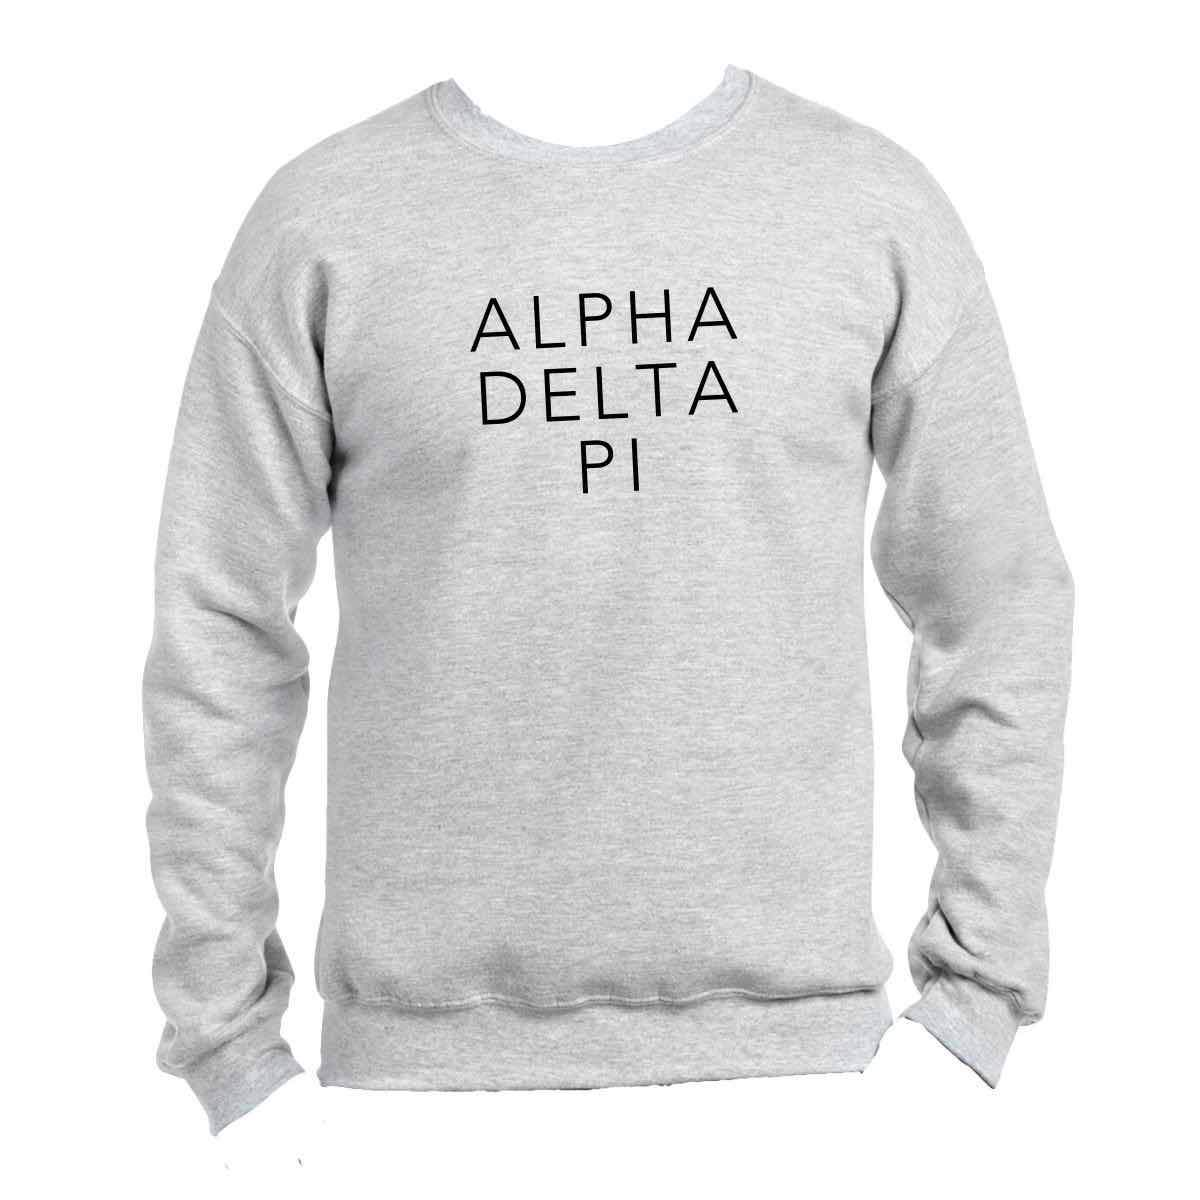 Alpha Delta Pi Sweatshirt with black greek words, light grey crew sweatshirt or hoodie Shop #AlphaDeltaPi clothing at M&D Sorority Gifts. 200+ #ADPI products available. #mdsororitygifts